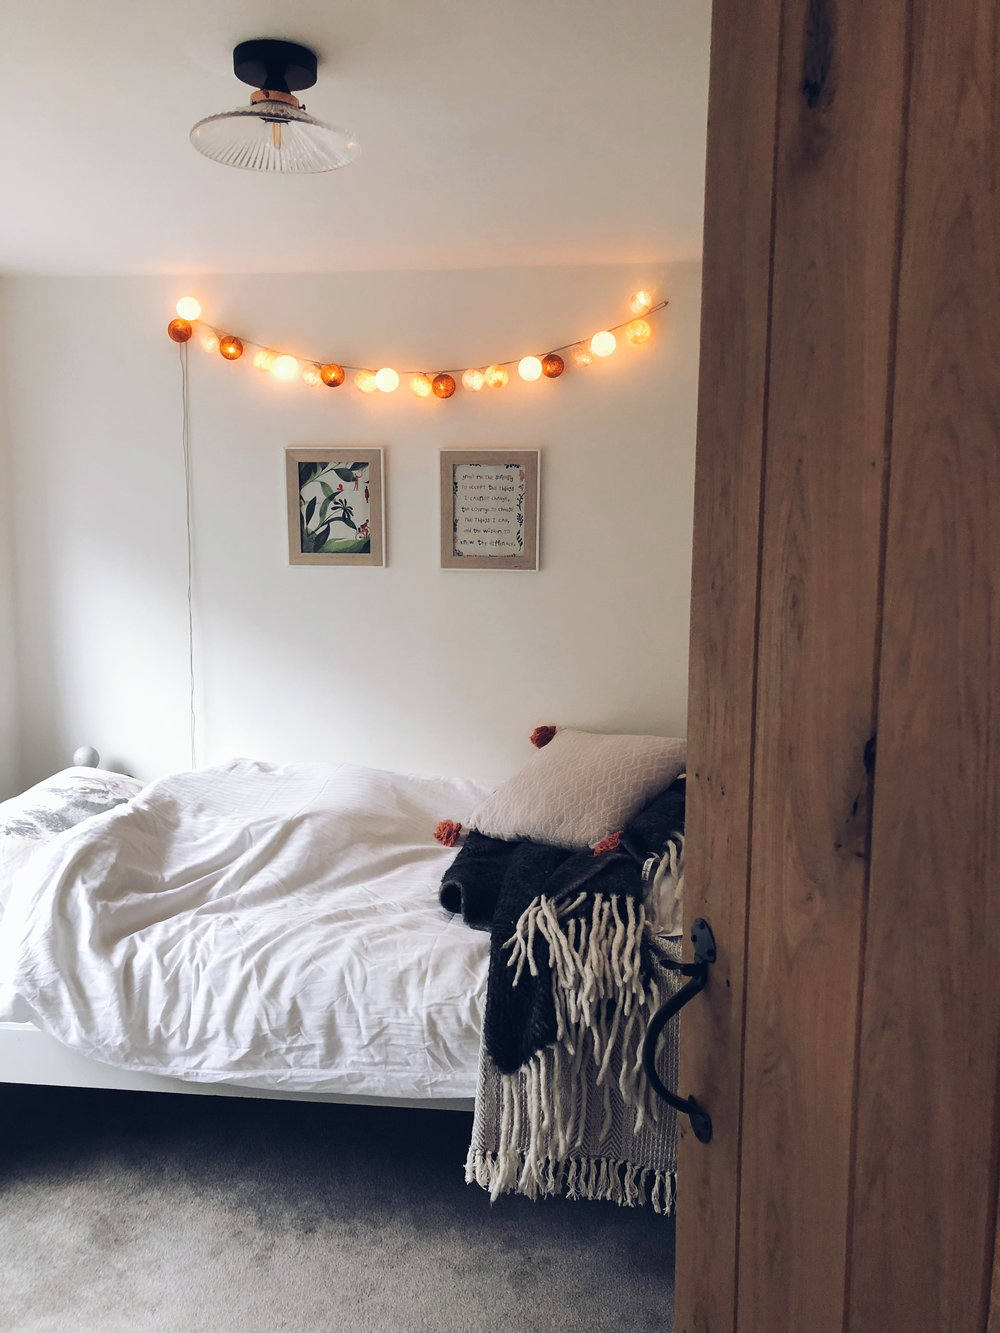 The simple white decor with hygge added fairy lights in one of the bedrooms